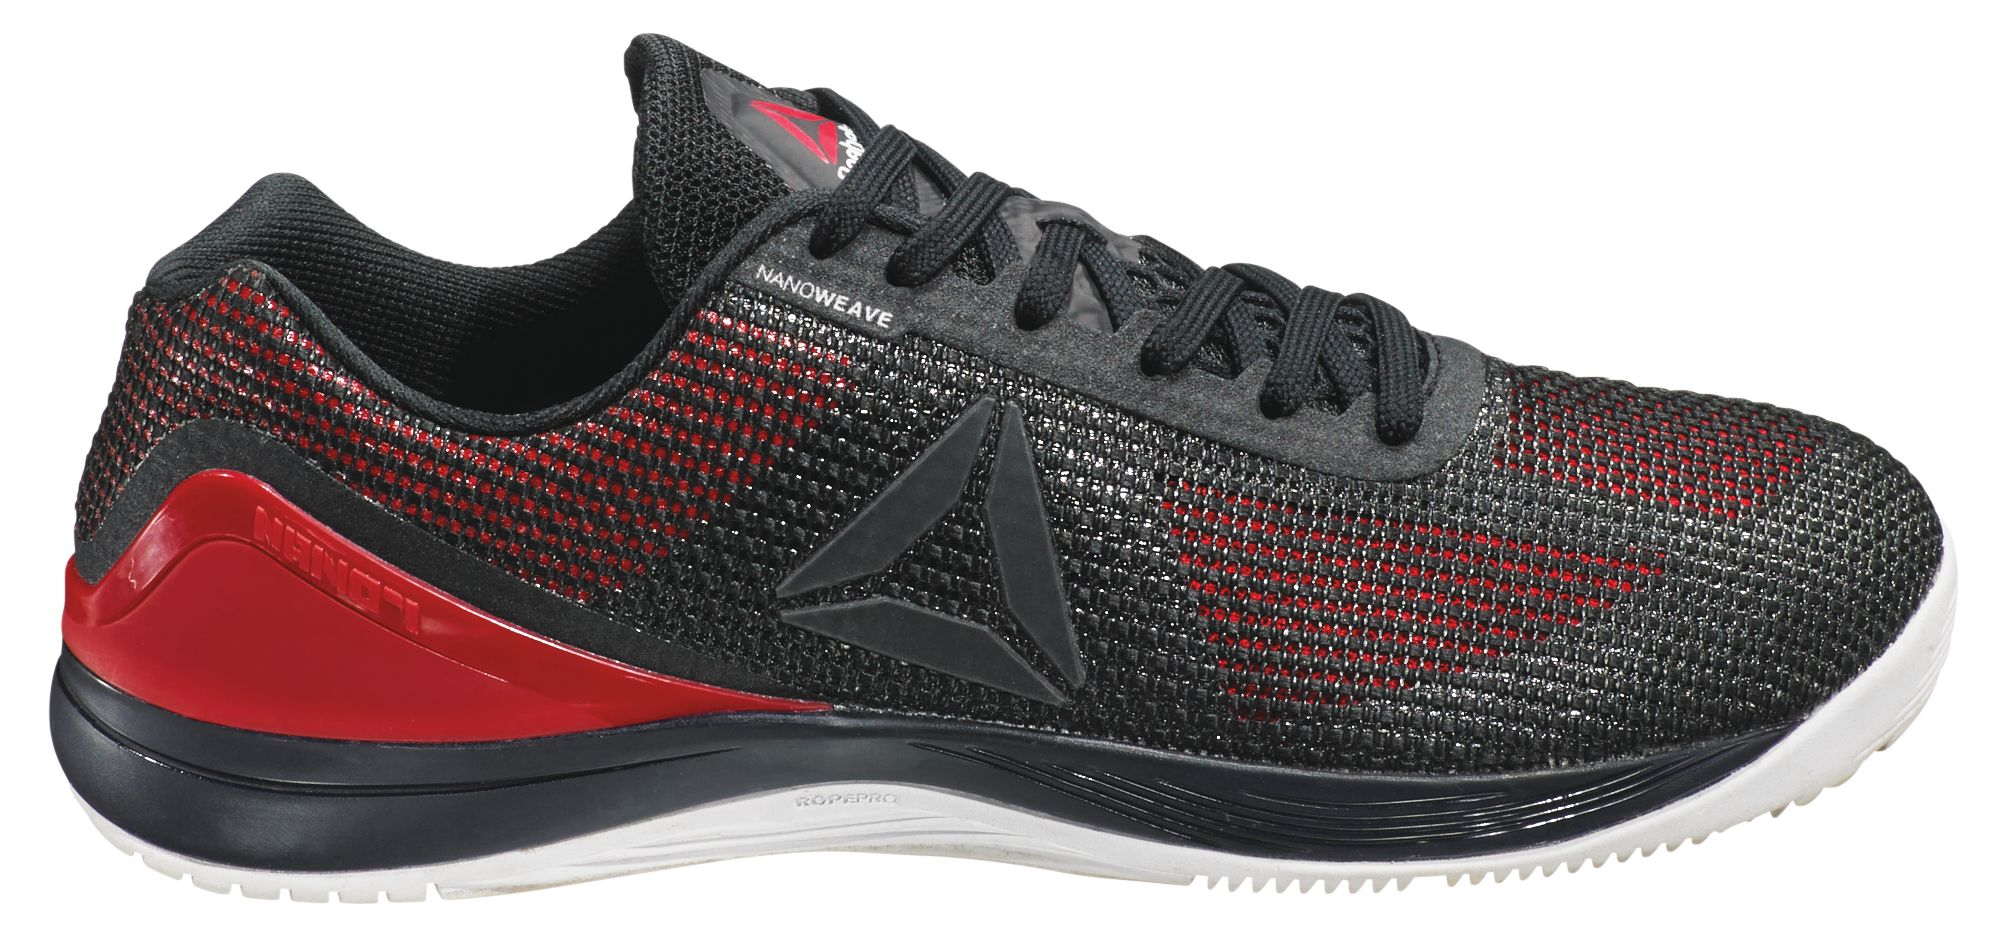 Reebok Men's CrossFit Nano 7.0 Training Shoes. 0:00. 0:00 / 0:00.  noImageFound ???